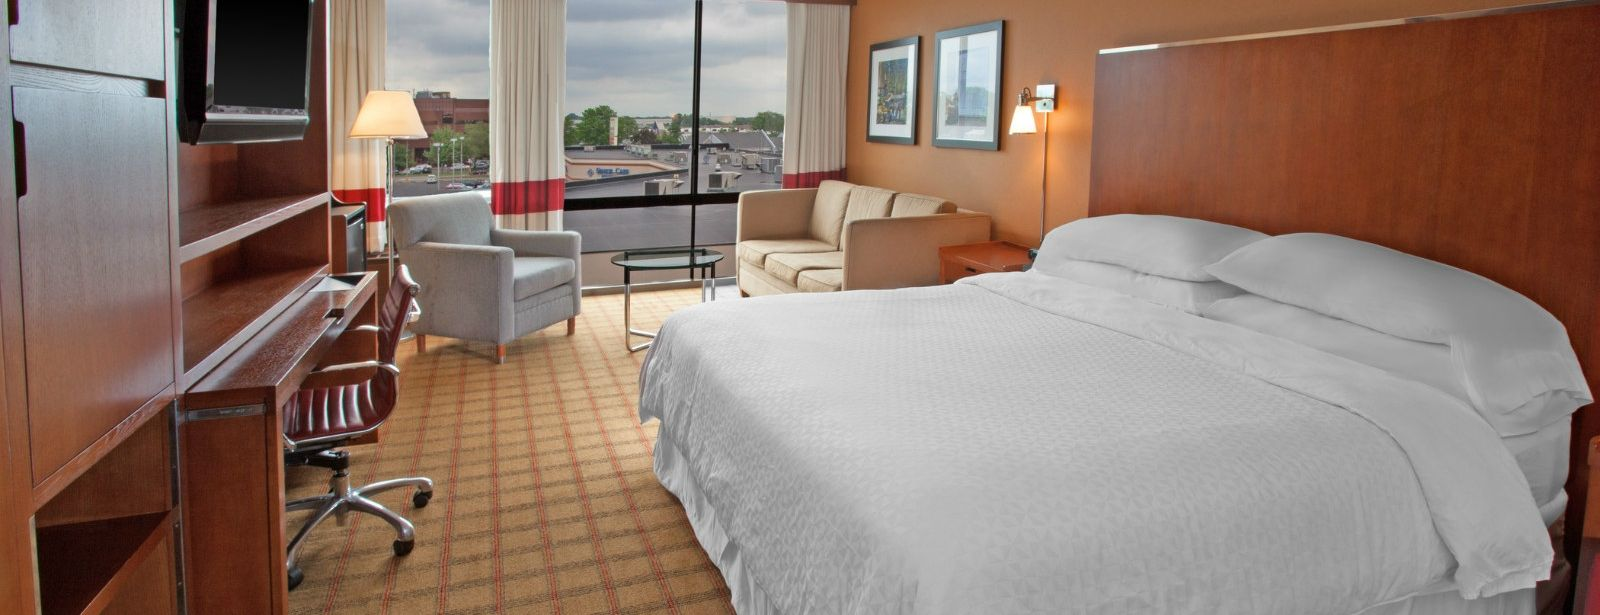 Philadelphia Accommodations - Traditional King Room